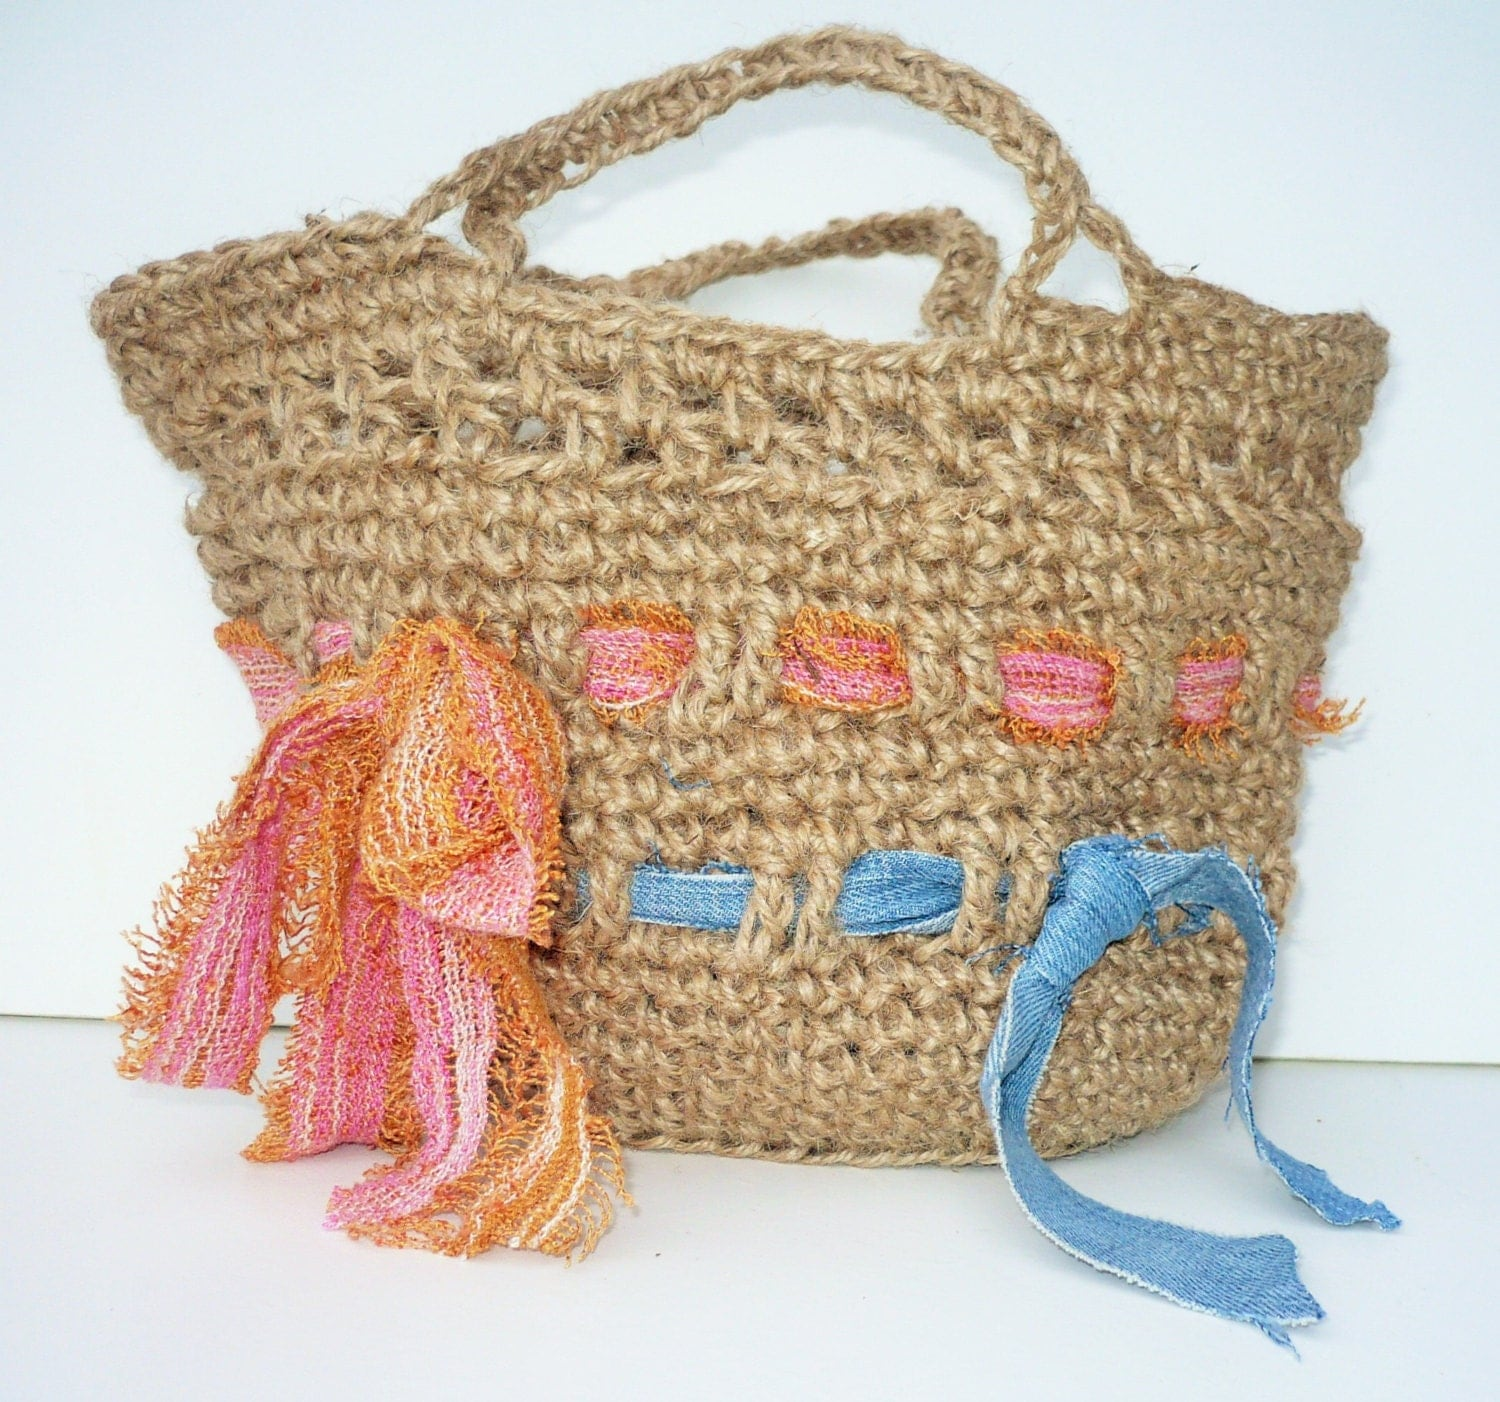 Crochet Small Tote Bag Pattern : Small Shopping Bag: Crocheted Jute Tote. by TrinketsNTrowels